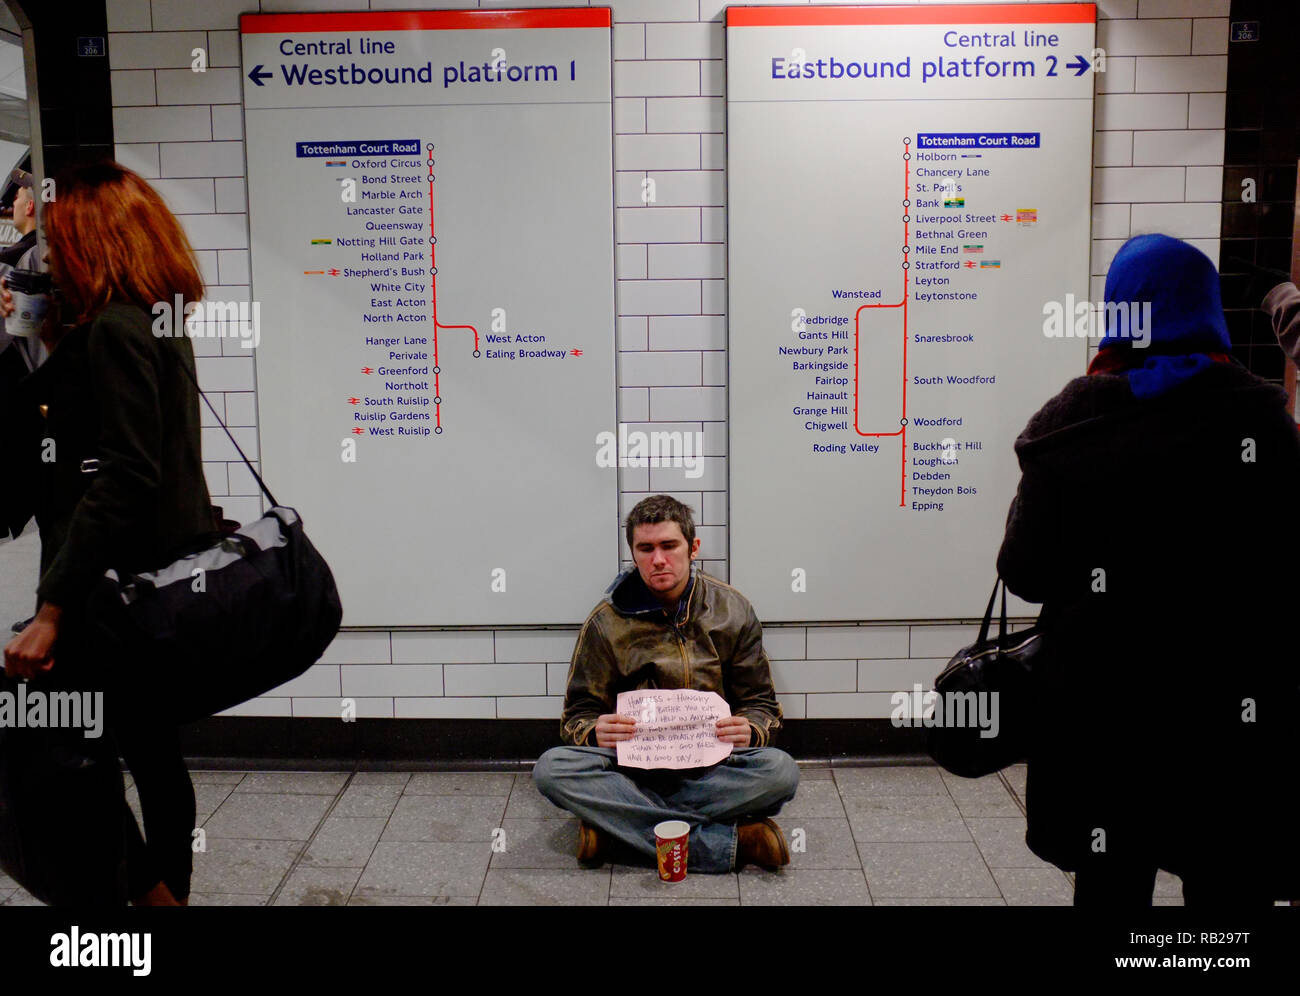 a young young, troubledhomeless man sits near the platforms of the central line on the london underground asking for help during the winter months - Stock Image